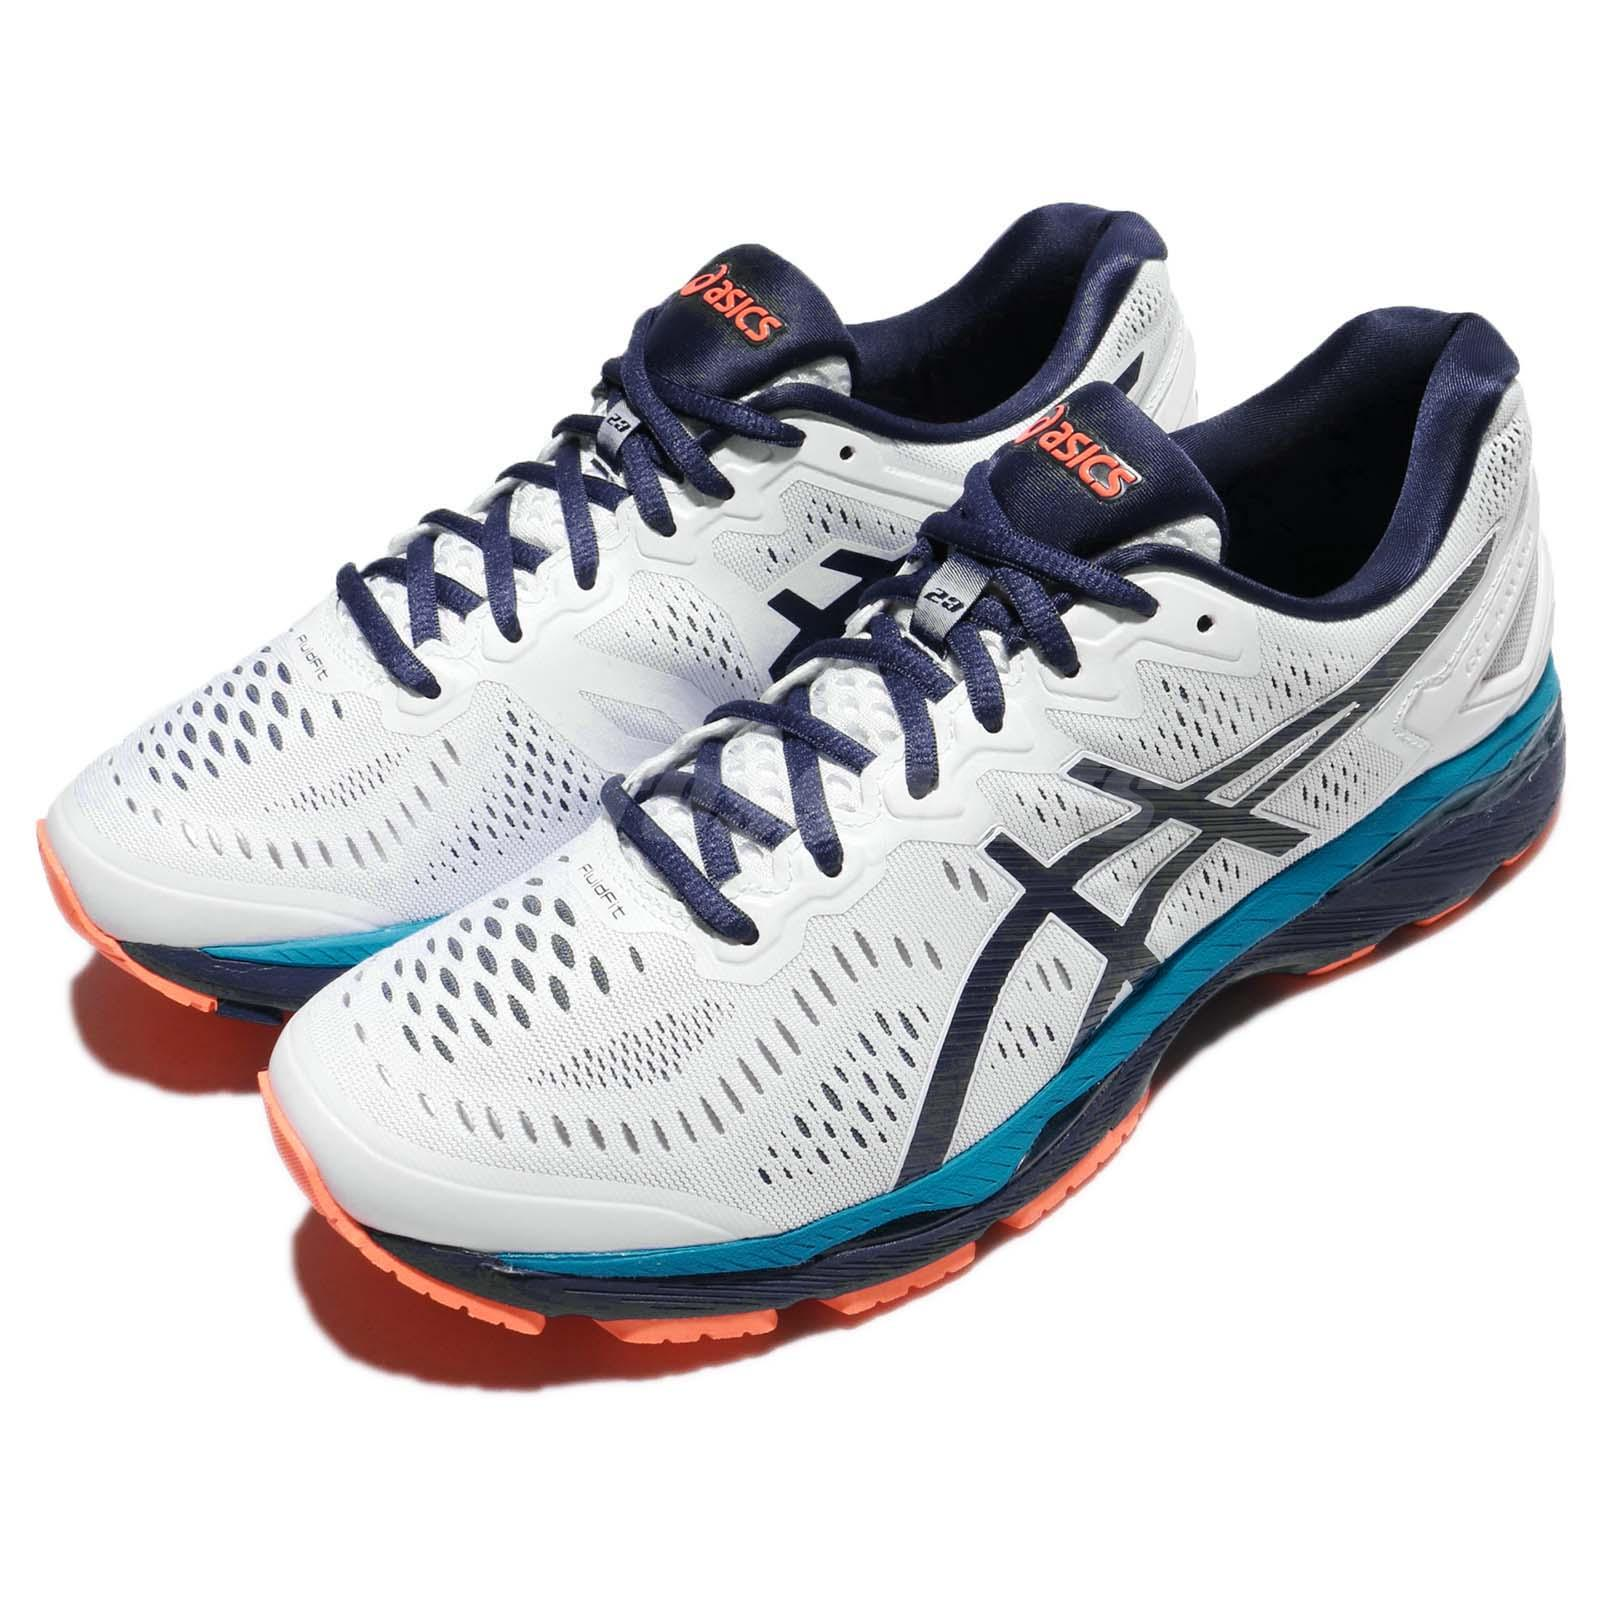 ASICS Gel Kayano 23 MEN Scarpe da corsa uomo White Blue Orange Scarpe t646n 0149